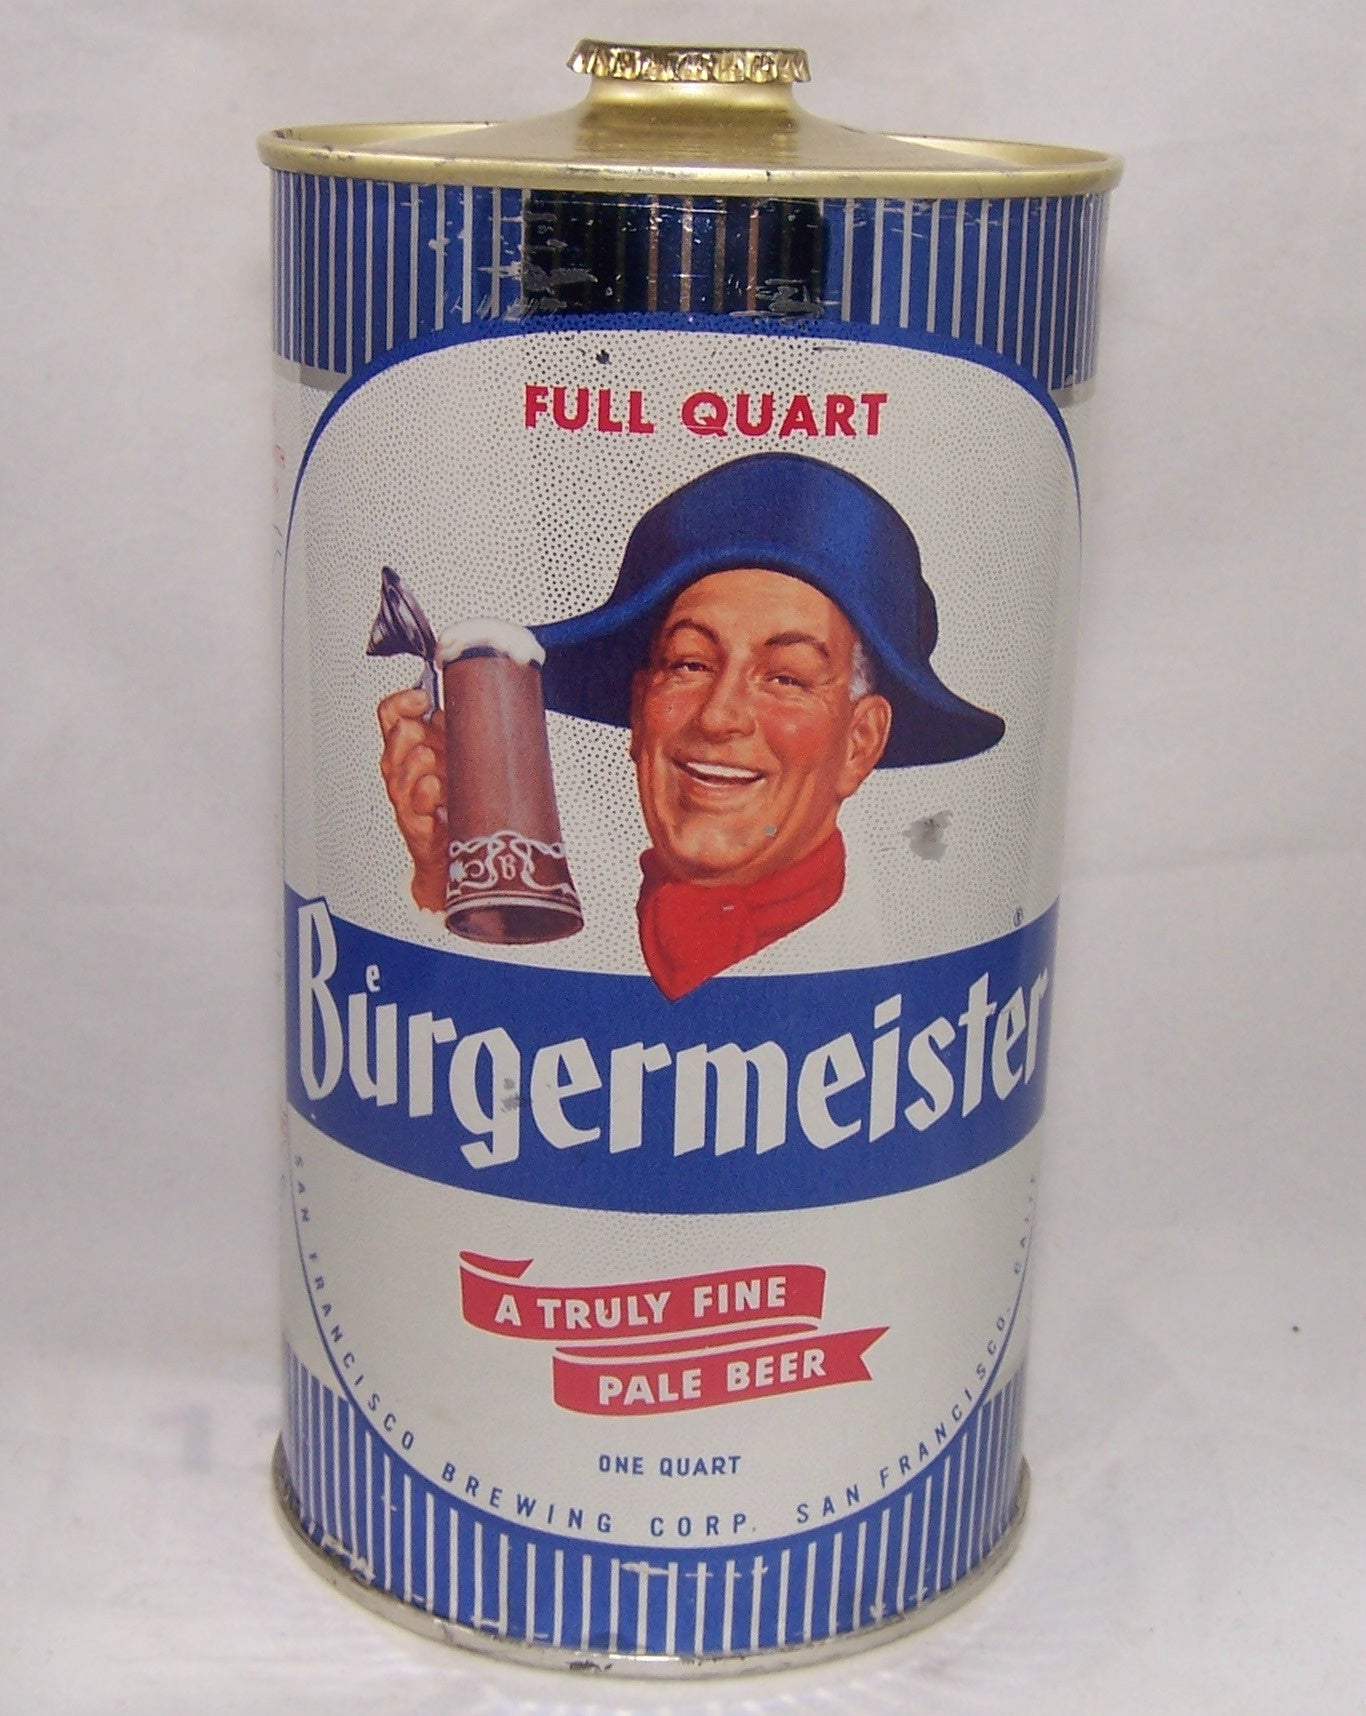 Burgermeister Pale Beer, USBC 205-02, Grade 1/1+ Sold on 09/16/16